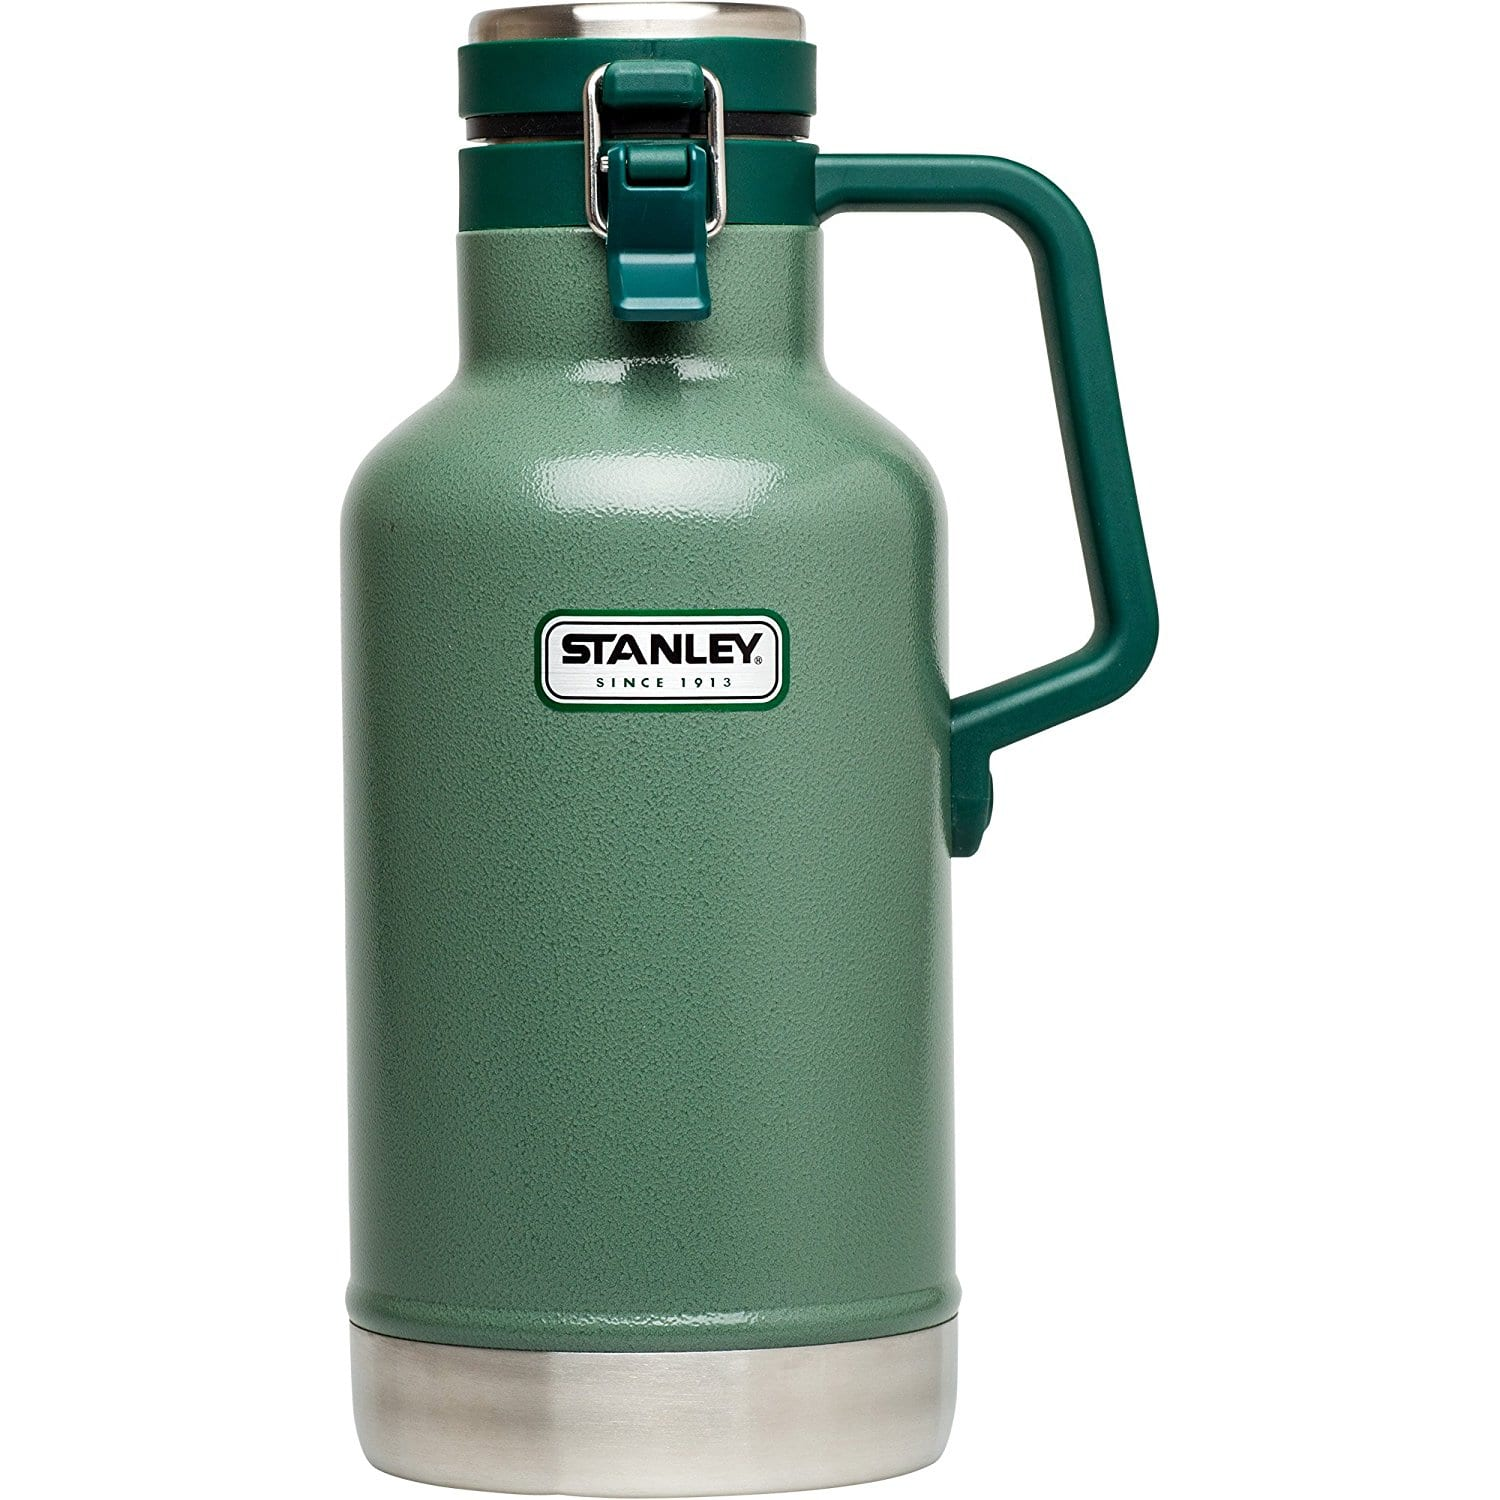 Stanley 64oz Vacuum Insulated Stainless Steel Growler (Hammertone Green) $14.55